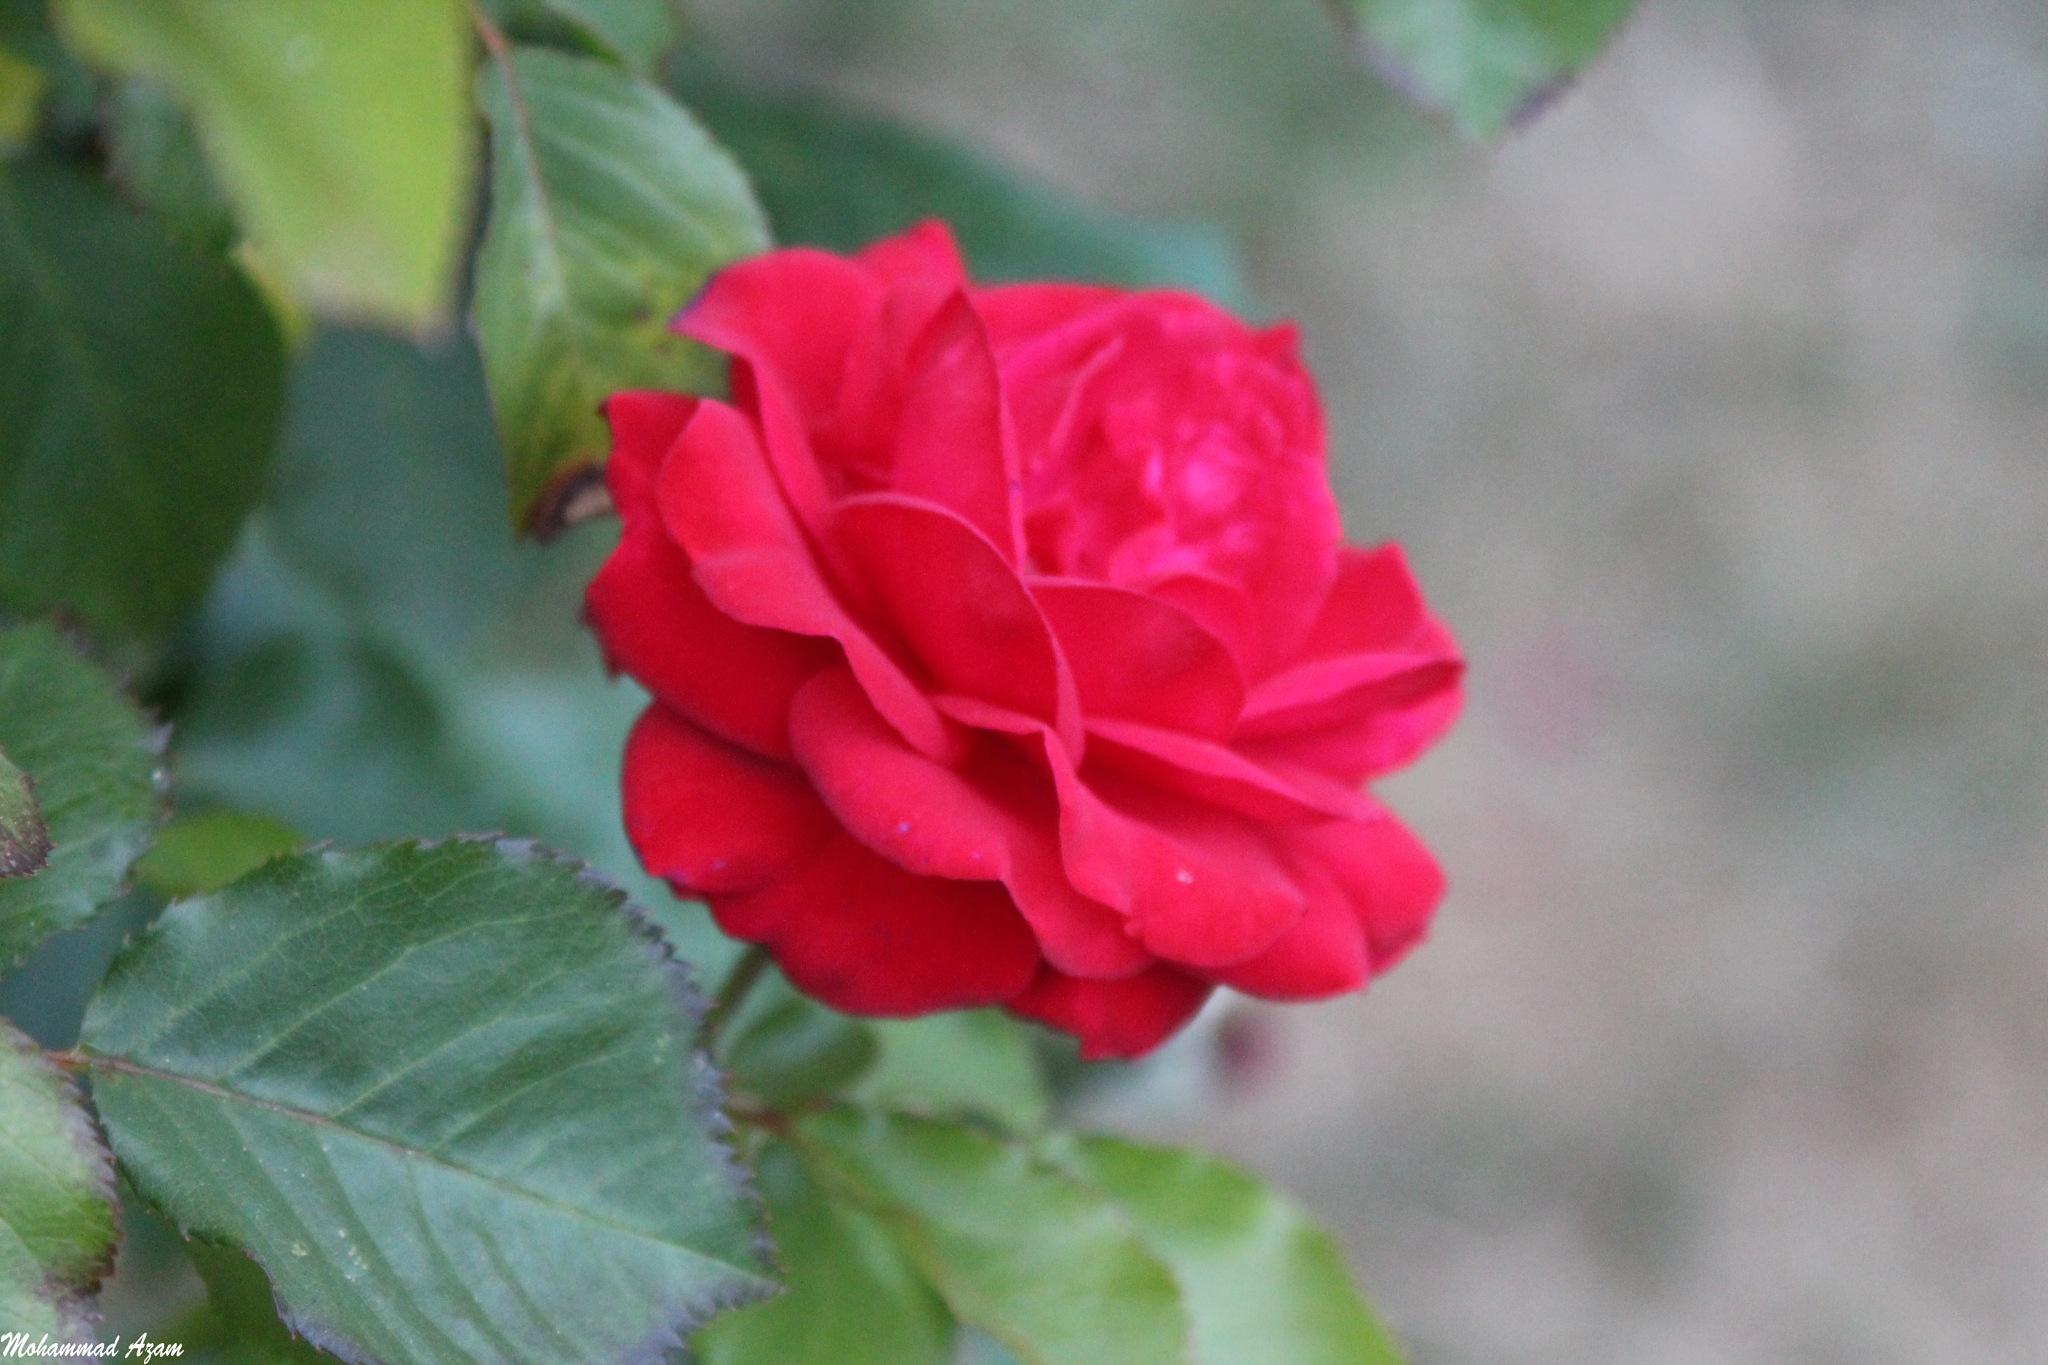 Red Rose 400 by Mohammad Azam